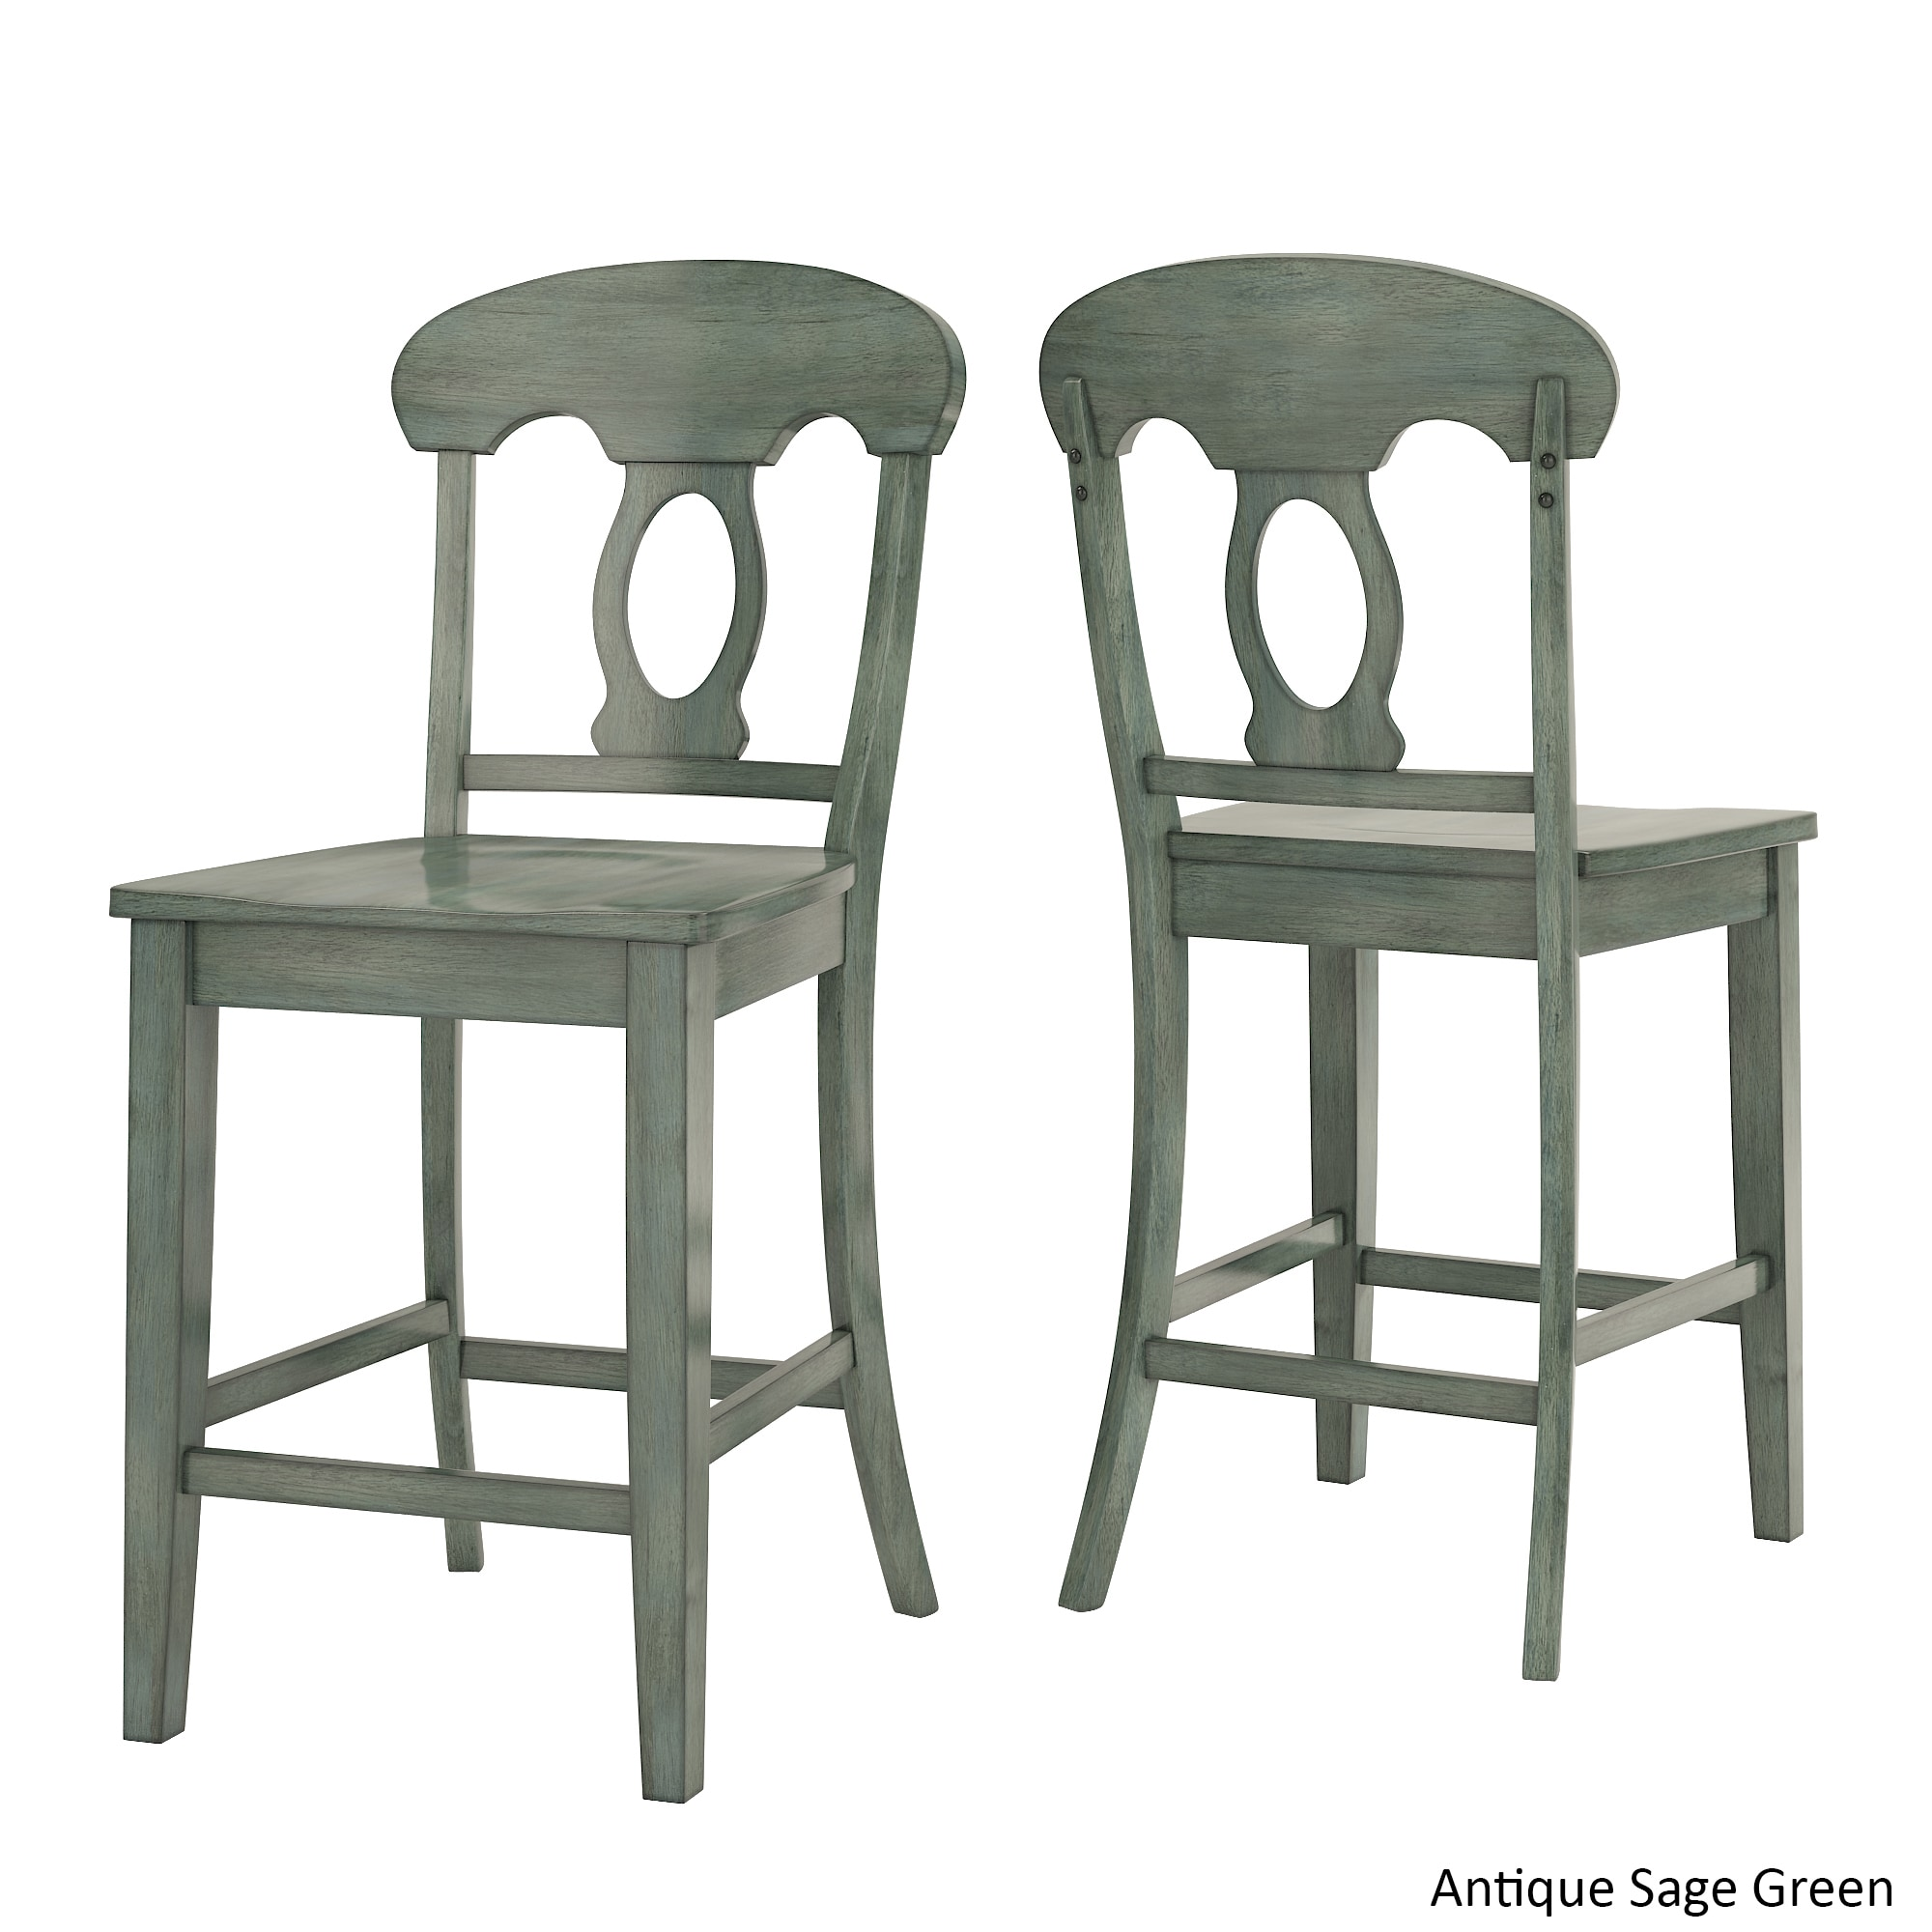 Shop eleanor napoleon back wood counter chair set of 2 by inspire q classic on sale free shipping today overstock com 15961682